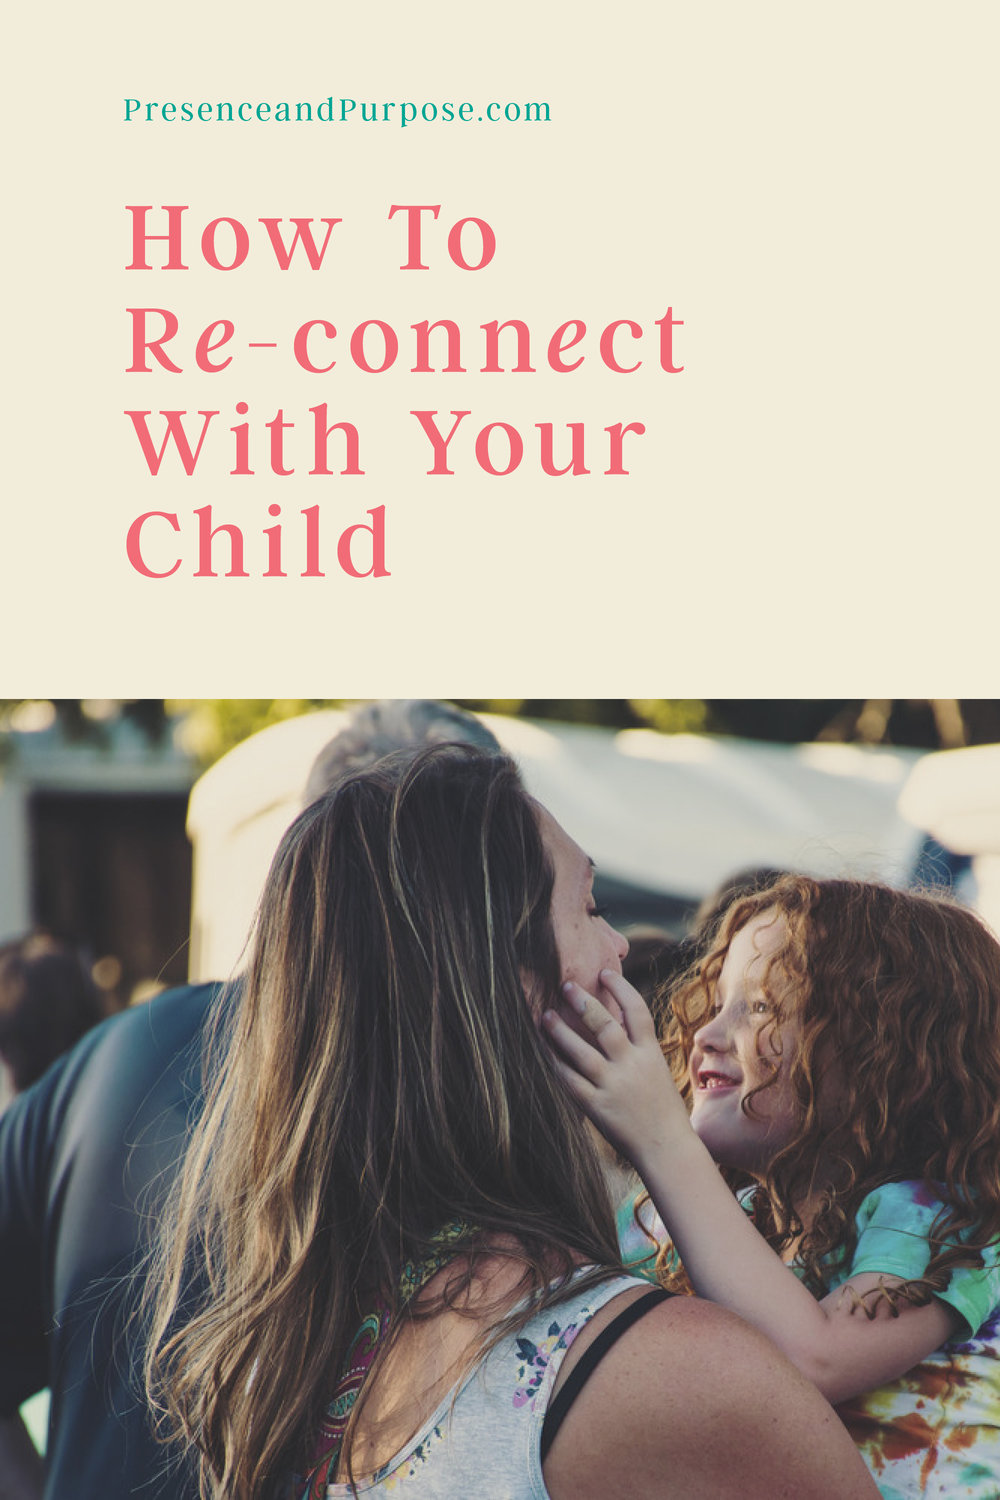 19_0210_How To Re-connect With Your Child.jpg